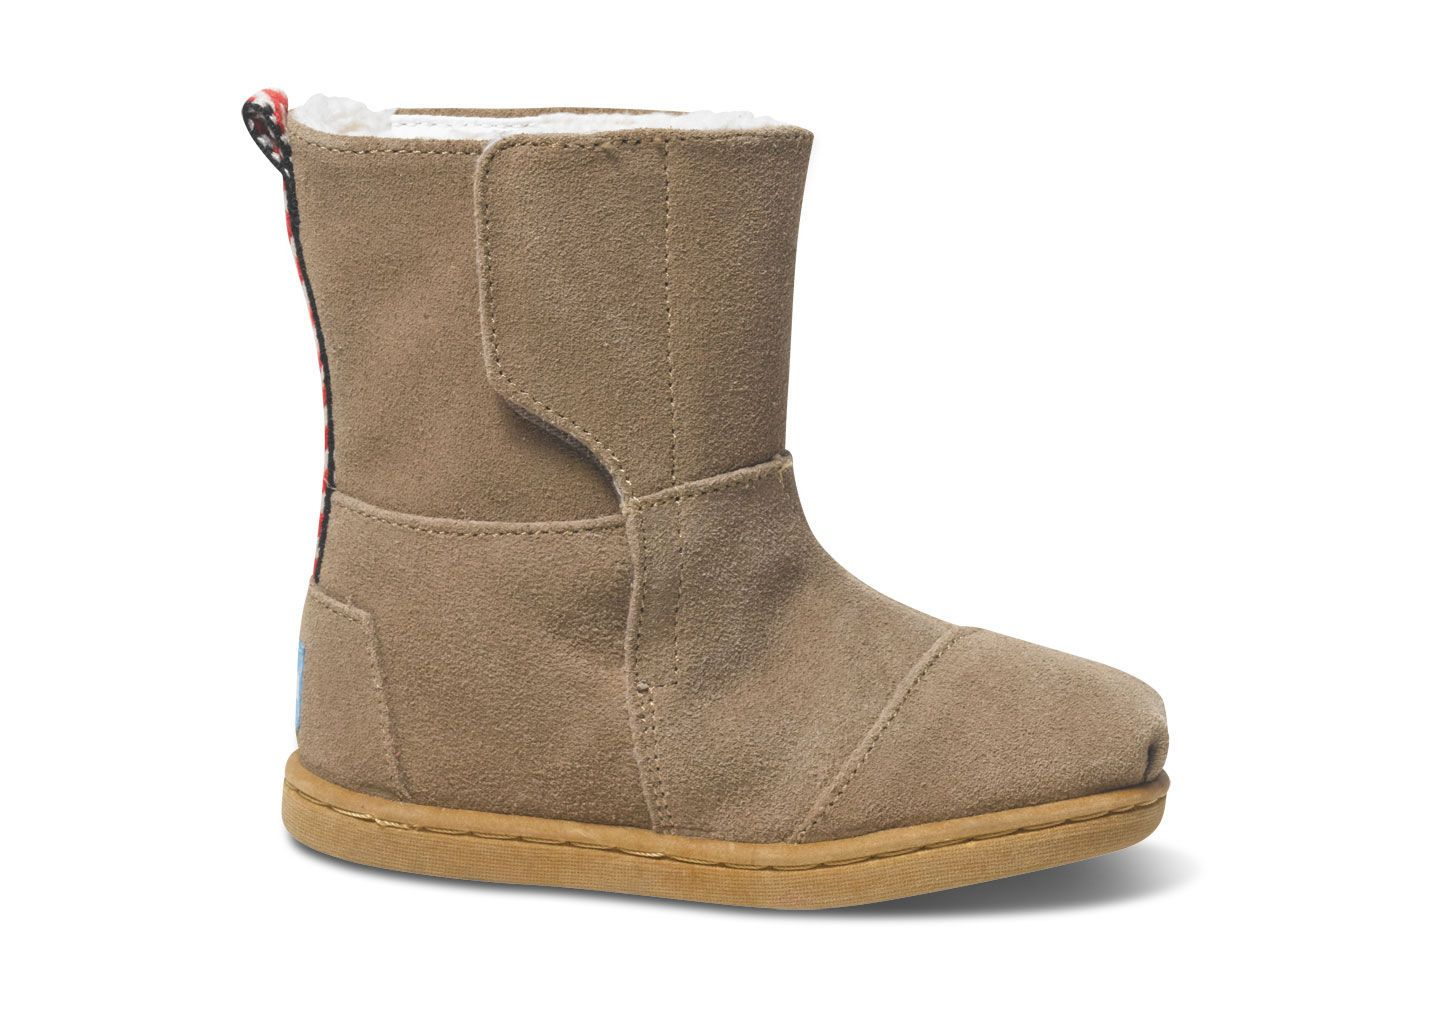 Sand Suede Tiny Nepal Boots #TOMS Give Back To School Contest